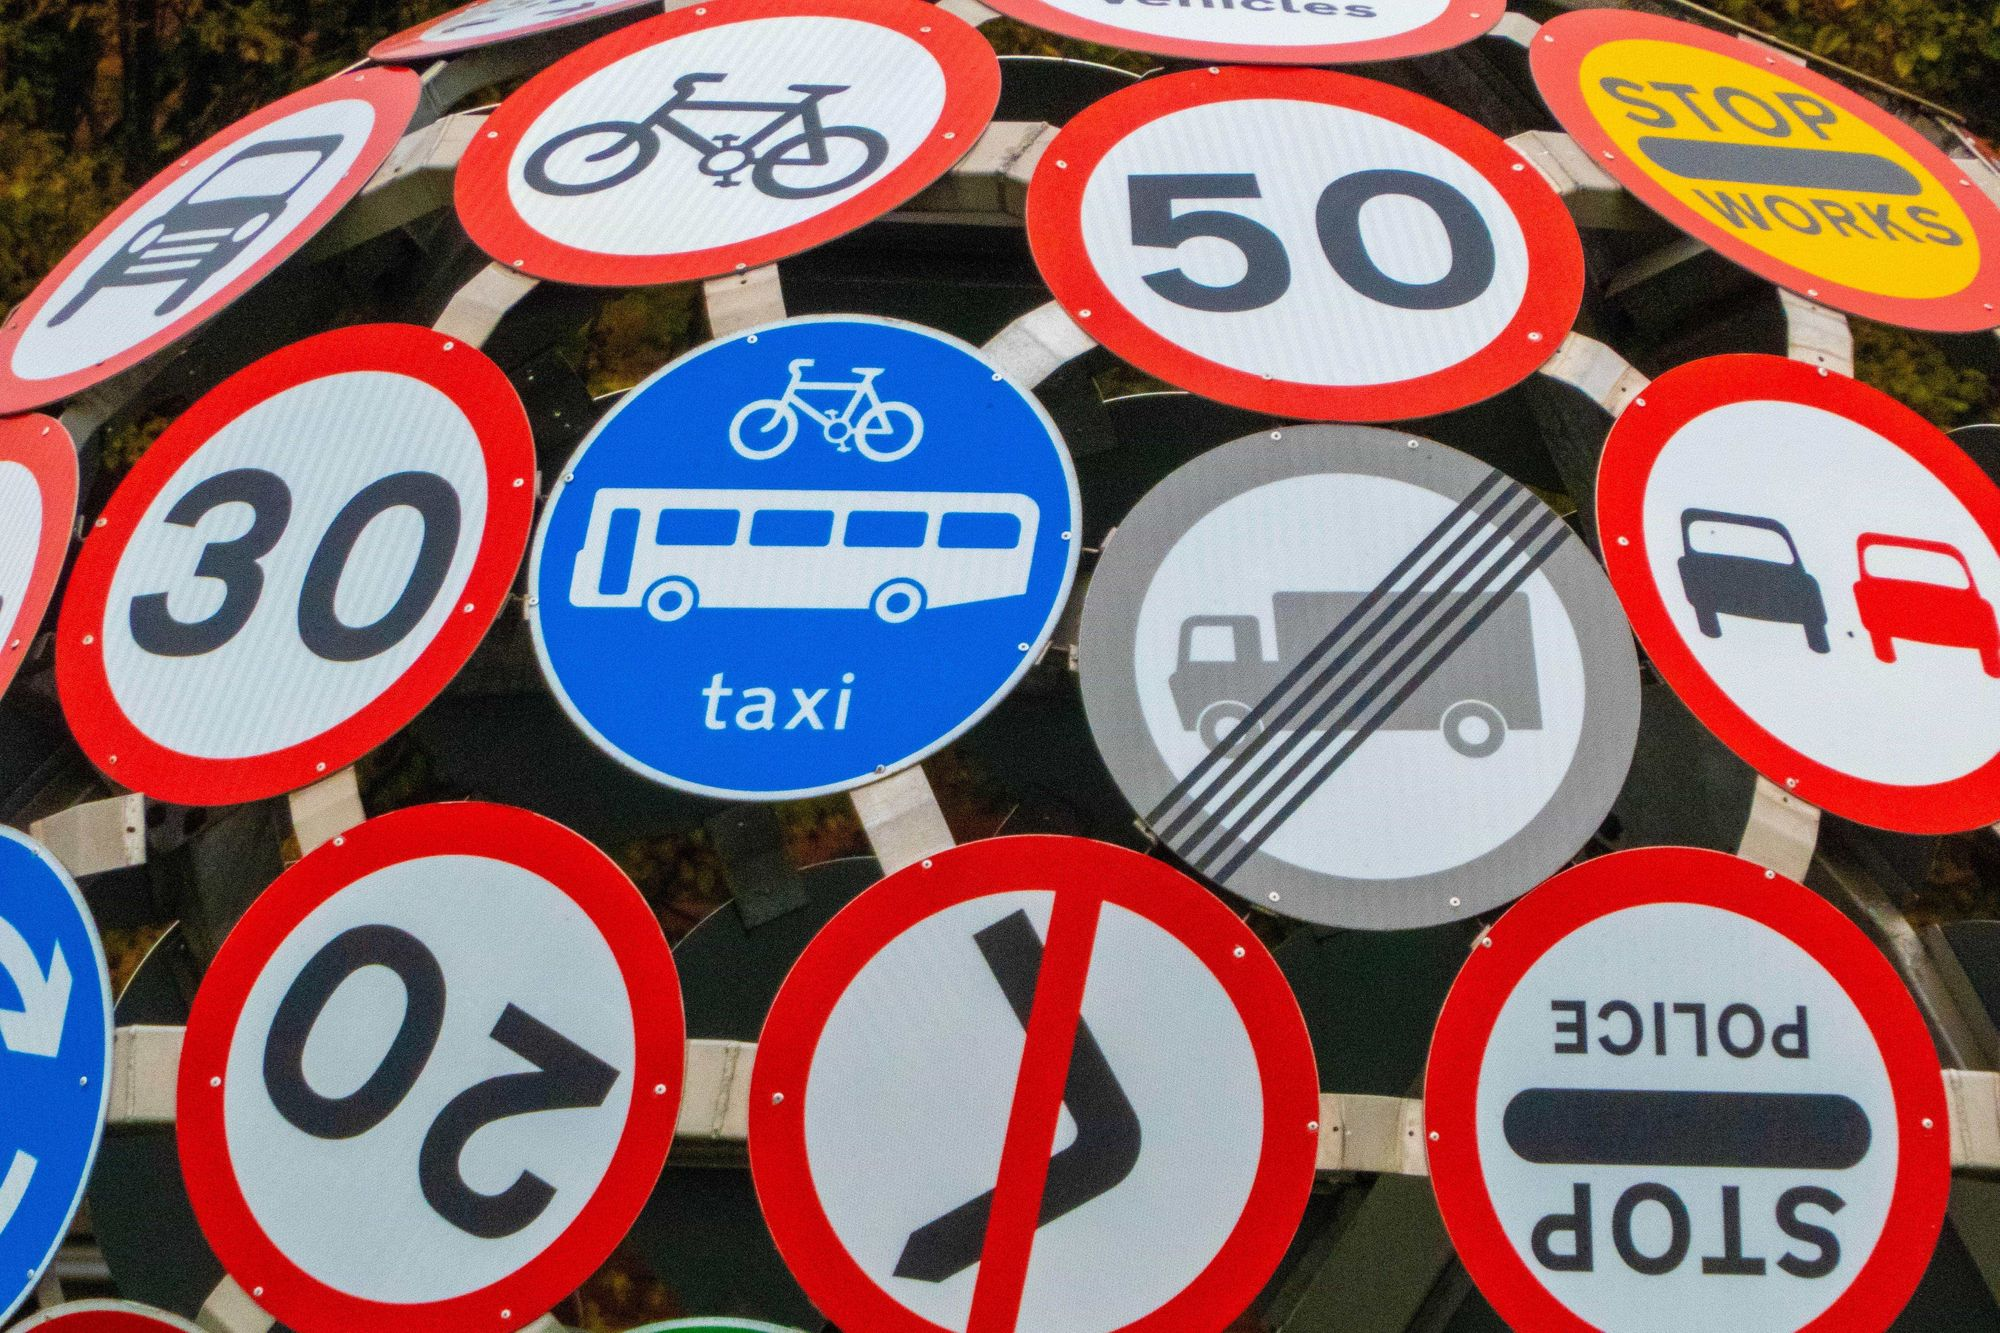 How to ride safely on the road: A highway code for cyclists